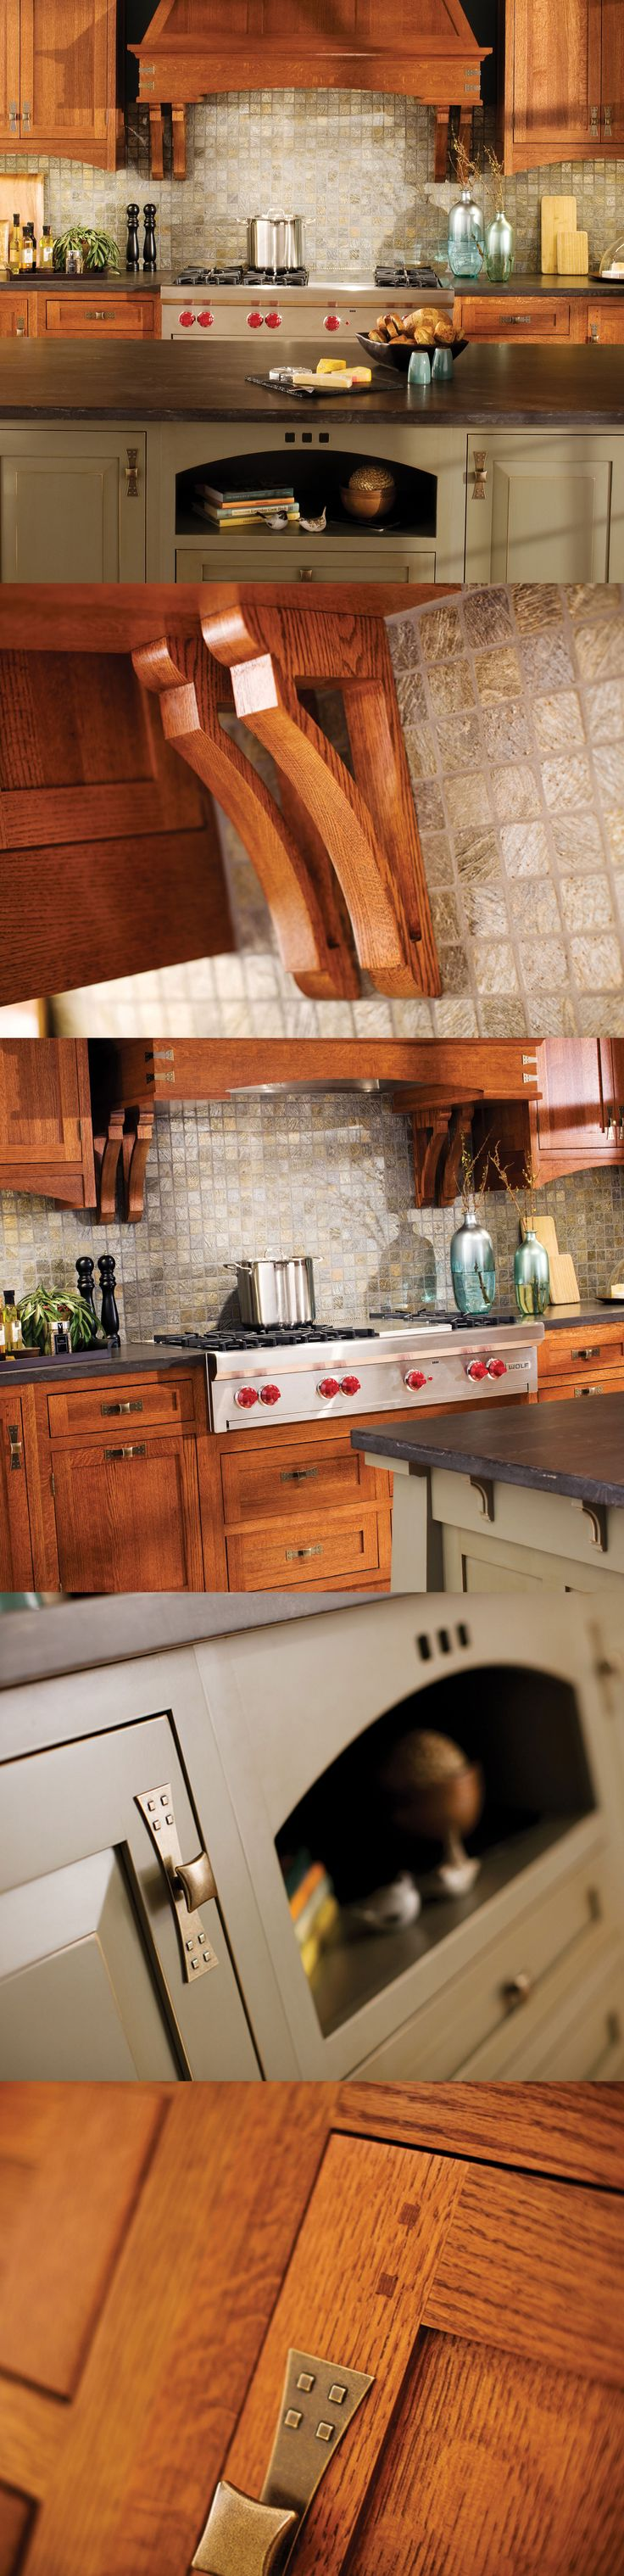 craftsman style kitchens kitchen design Craftsman Kitchen Design in Dura Supreme Cabinetry LOVE THOSE HANDLES